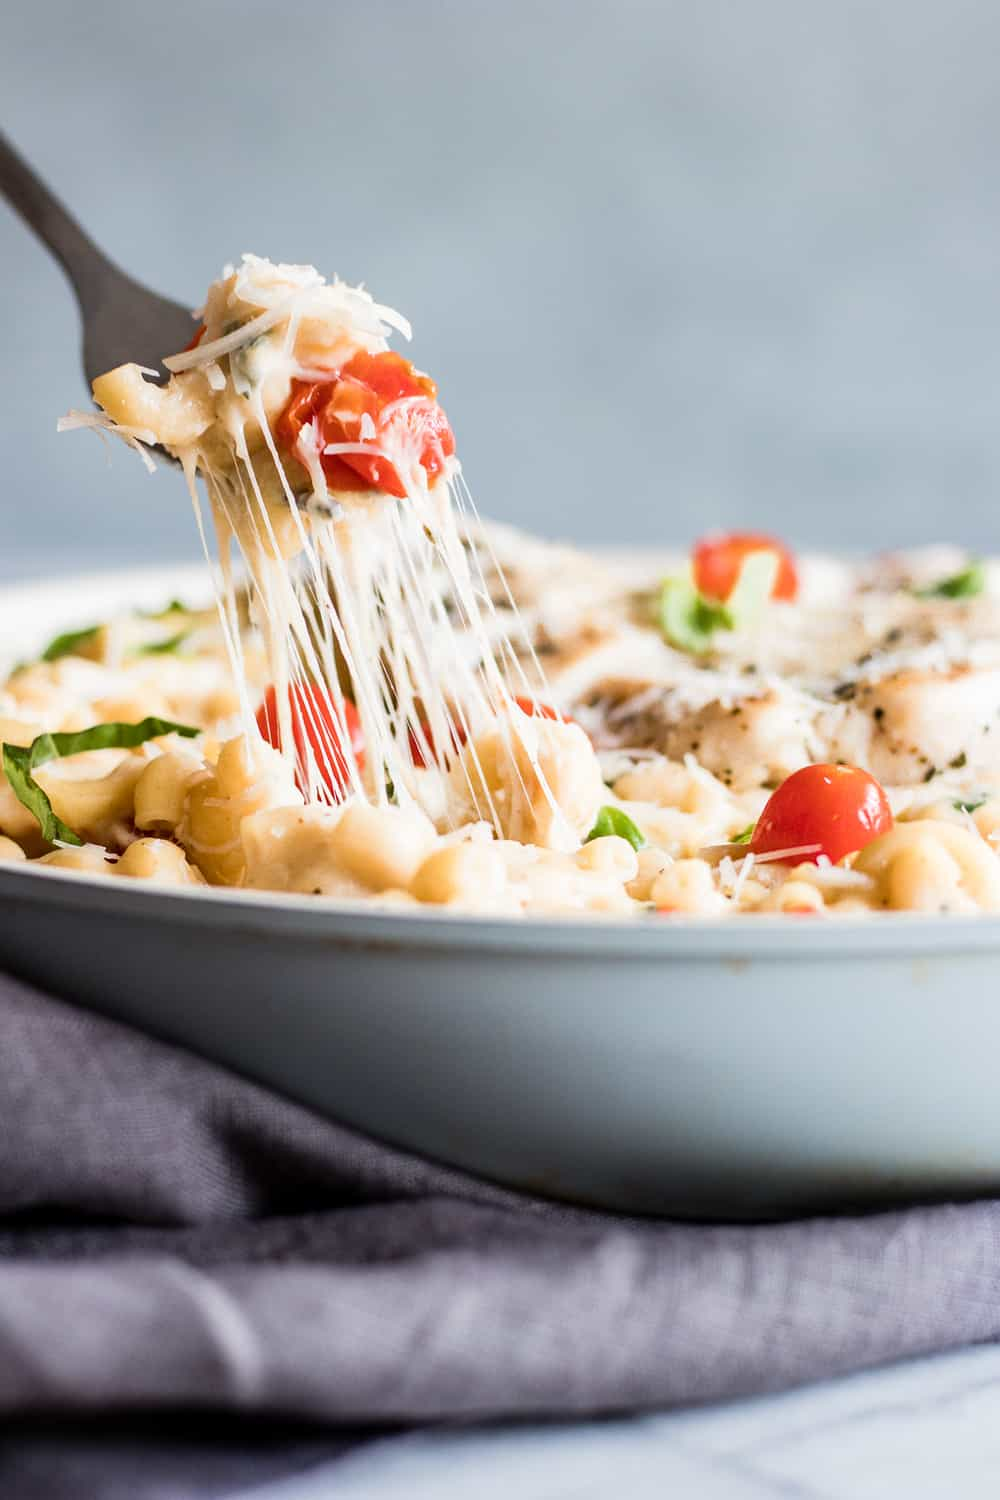 Chicken Caprese Macaroni and Cheese. A quick and easy one pot meal loaded with juicy chicken, cheesy pasta and fresh tomatoes and basil.